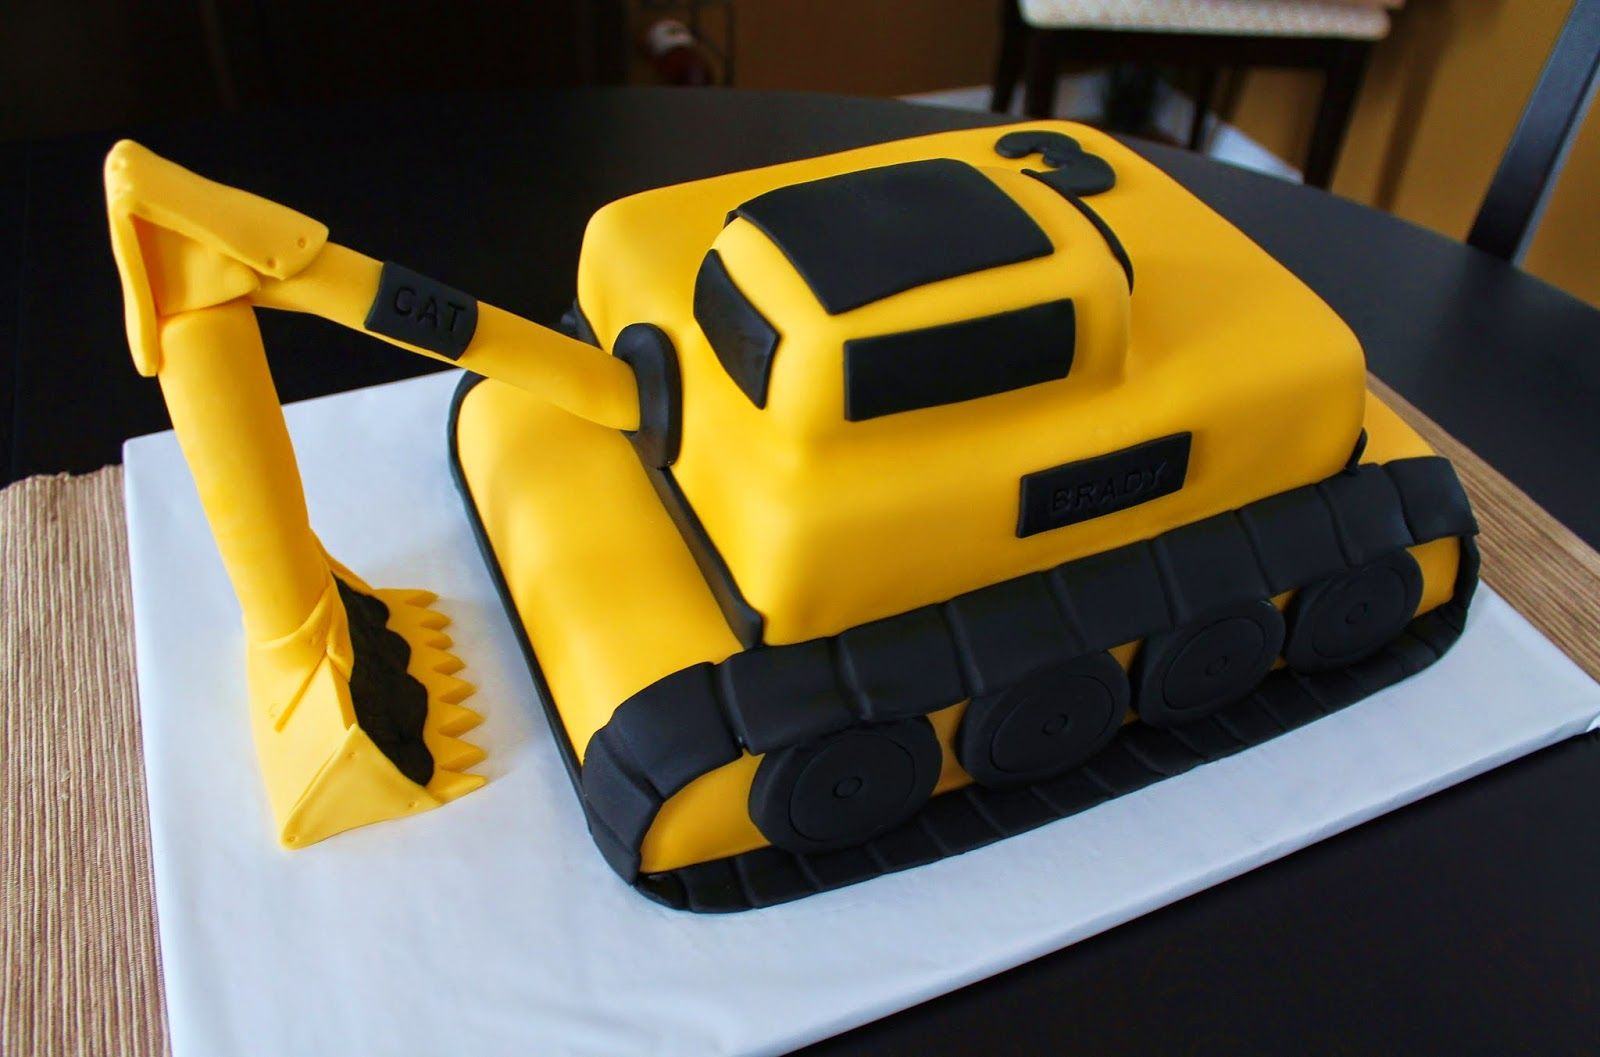 Excavator cake template excavator cake construction for Digger cake template